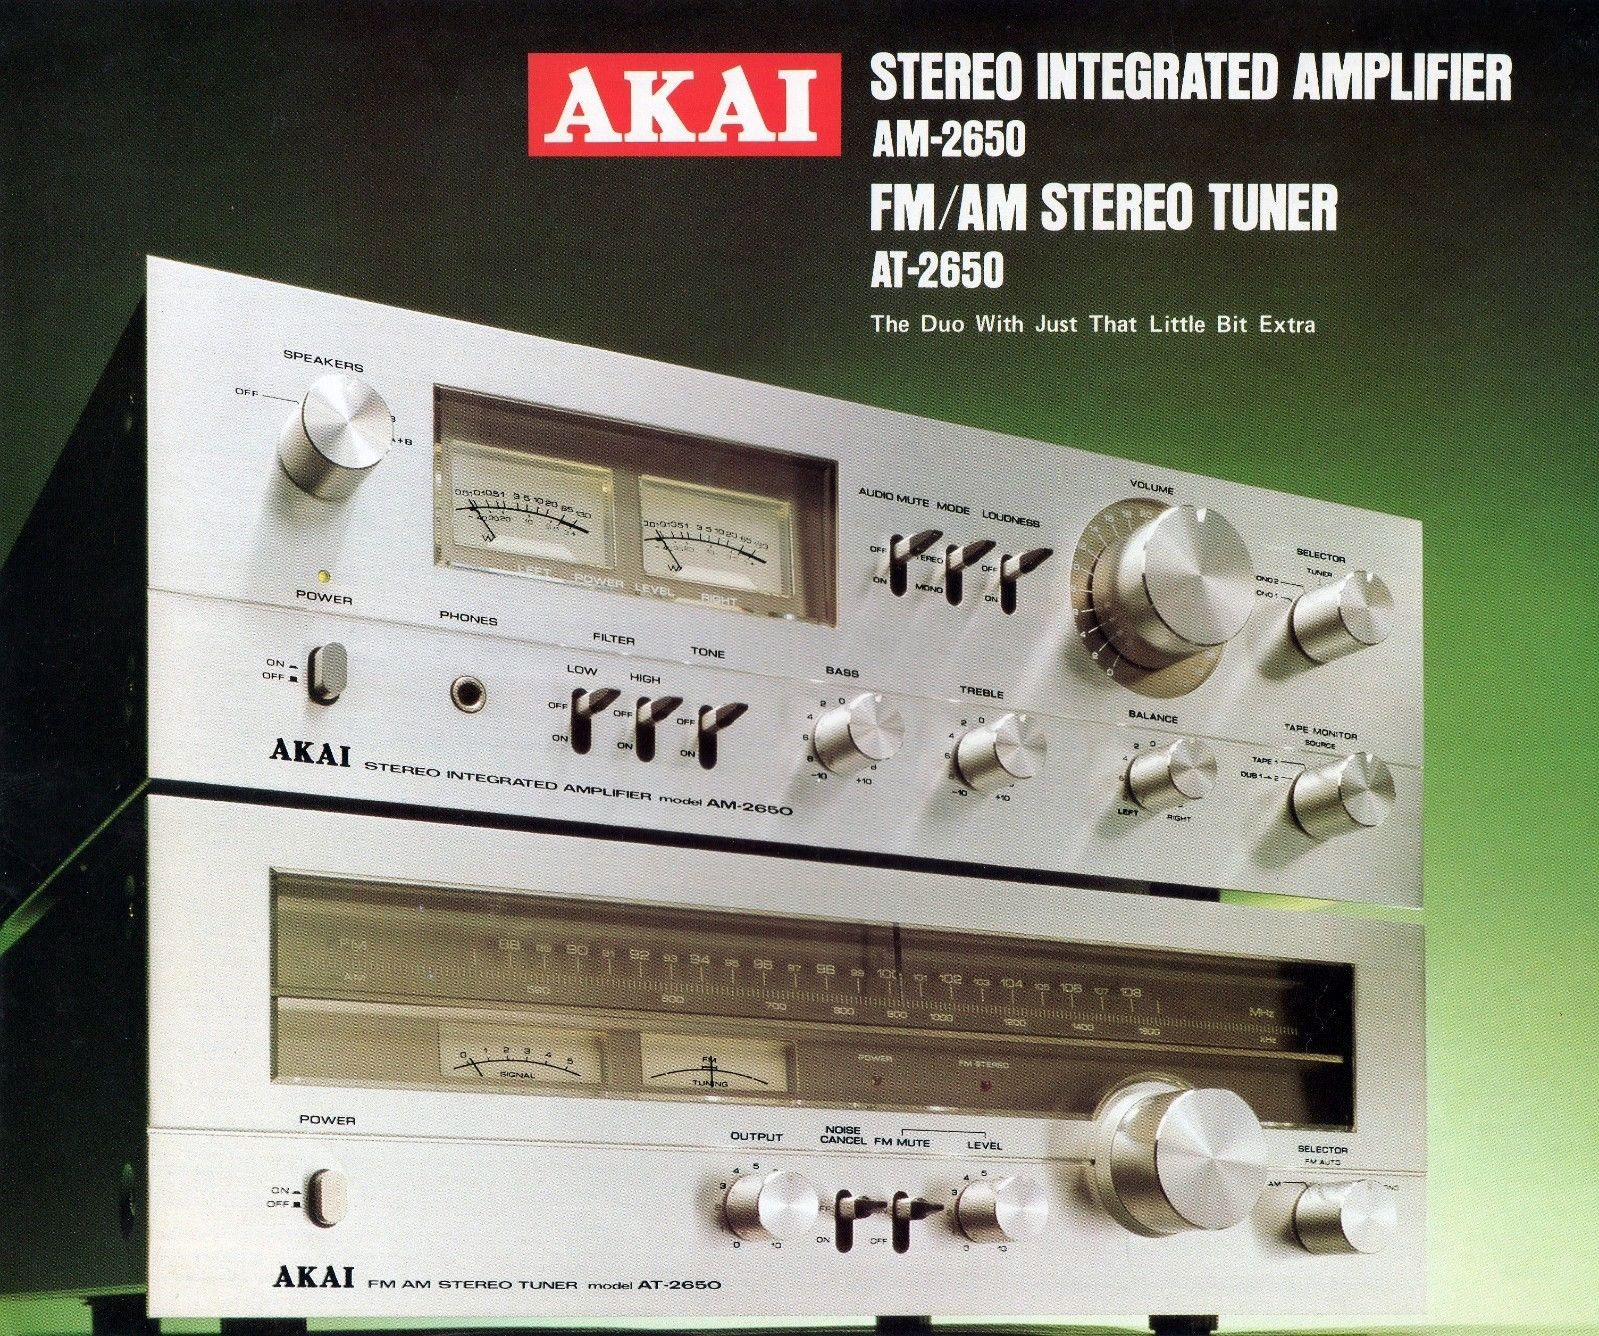 Akai AM-AT-2650-Prospekt-1.jpg